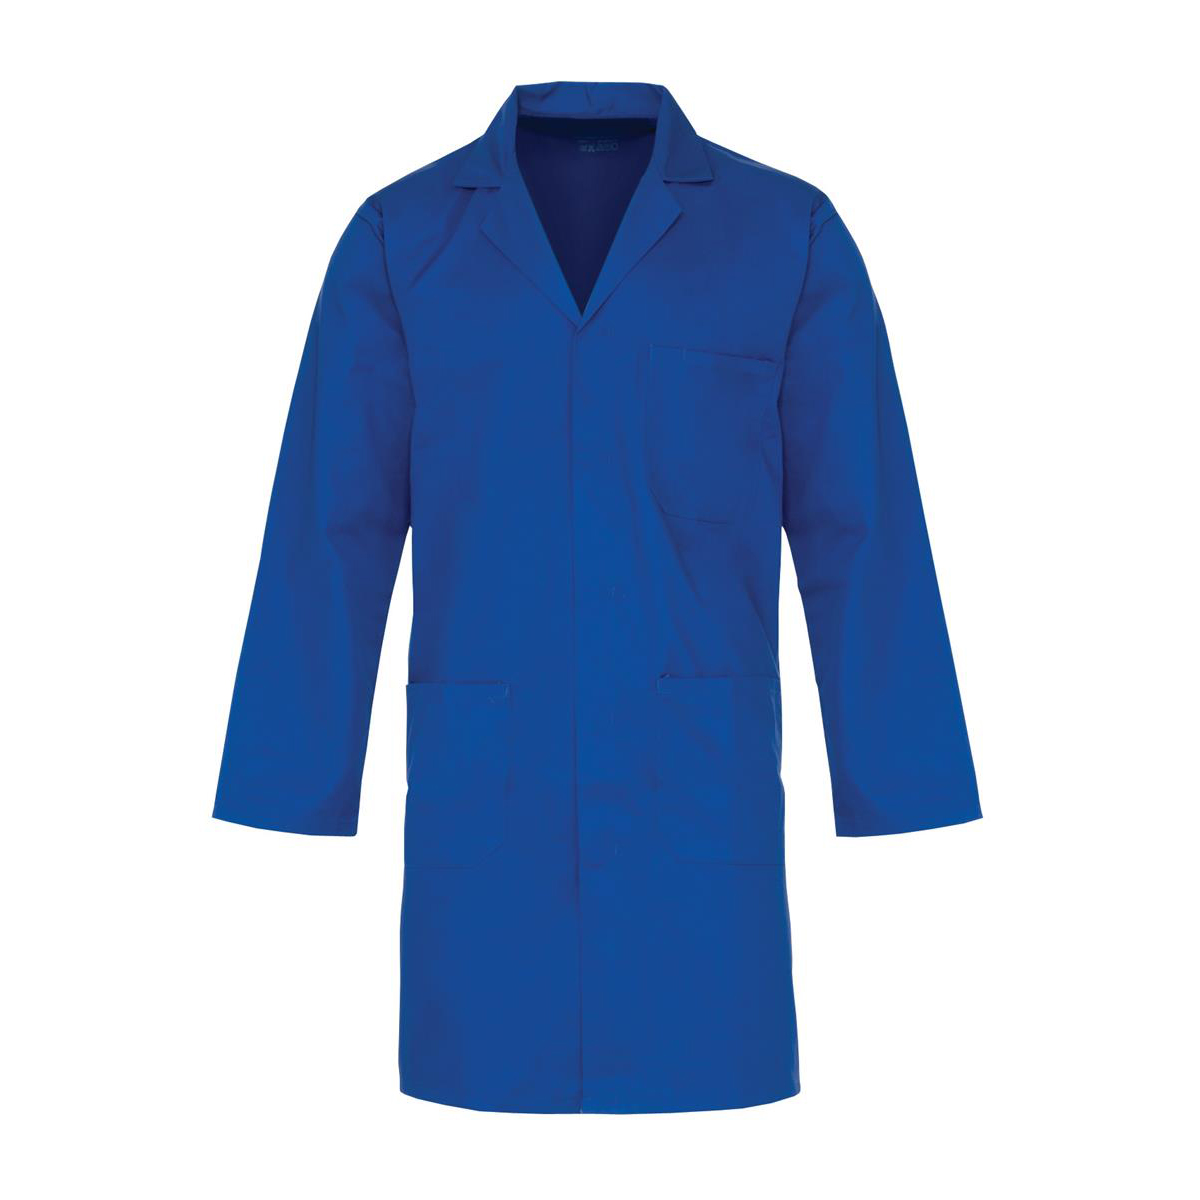 Click Lab Coat Polycotton with 3 Pockets Extra Large Navy Ref PCWCN48 Approx 3 Day Leadtime